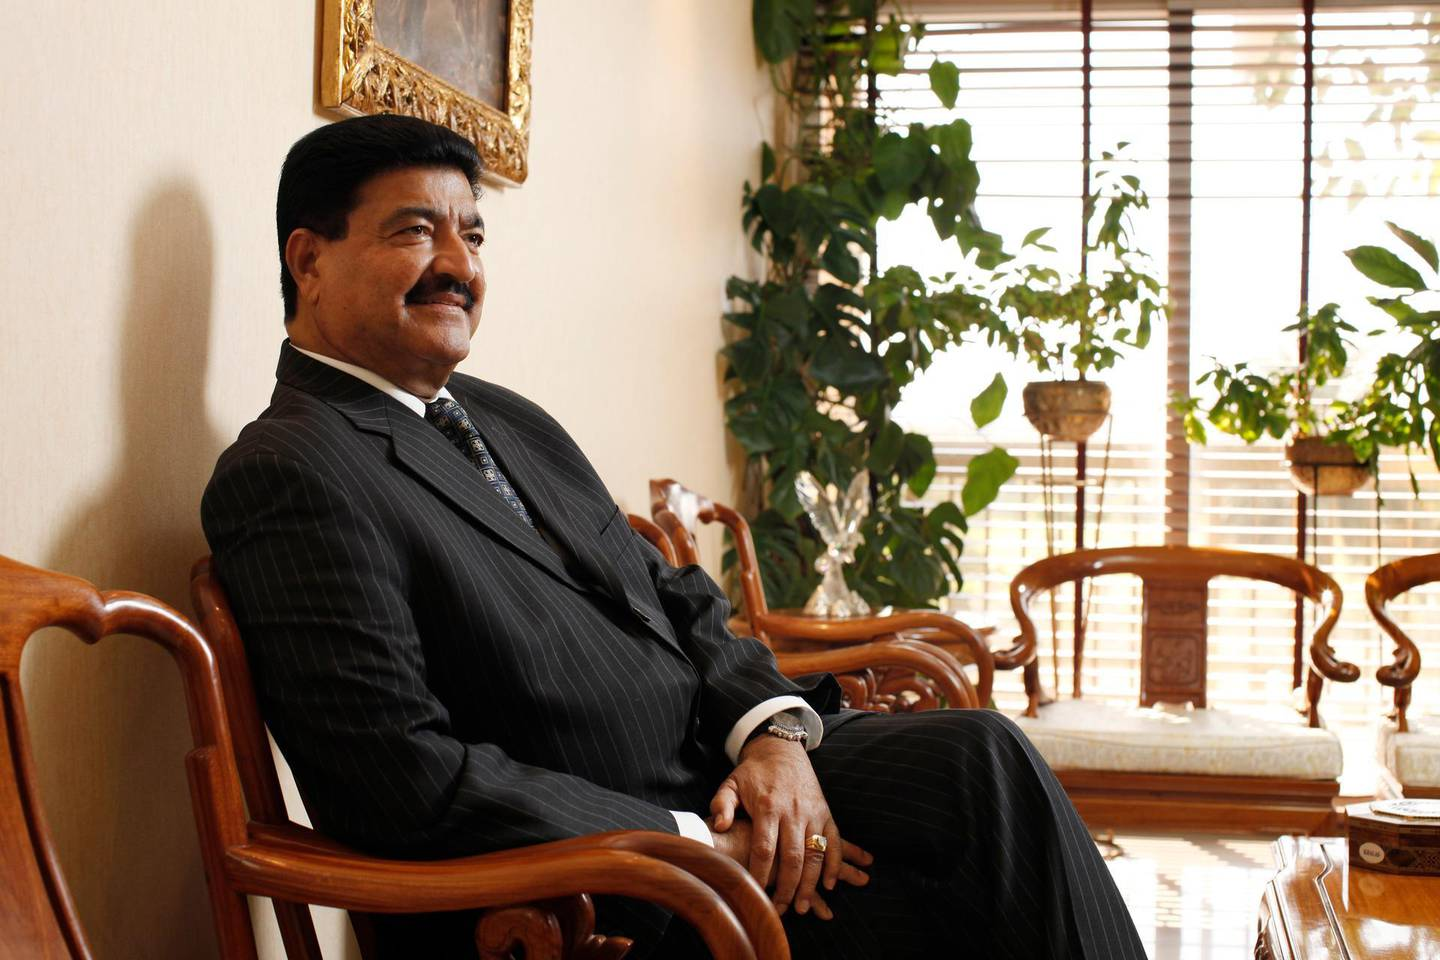 ABU DHABI, UNITED ARAB EMIRATES - December 31, 2009: Dr B. R. Shetty, Managing Director and CEO of NMC Group (NMC Specialty Hospital, UAE Exchange, Neopharma) sits for a portrait in his office.  ( Ryan Carter / The National ) *** Local Caption ***  RC007-DrShetty20091231.jpg